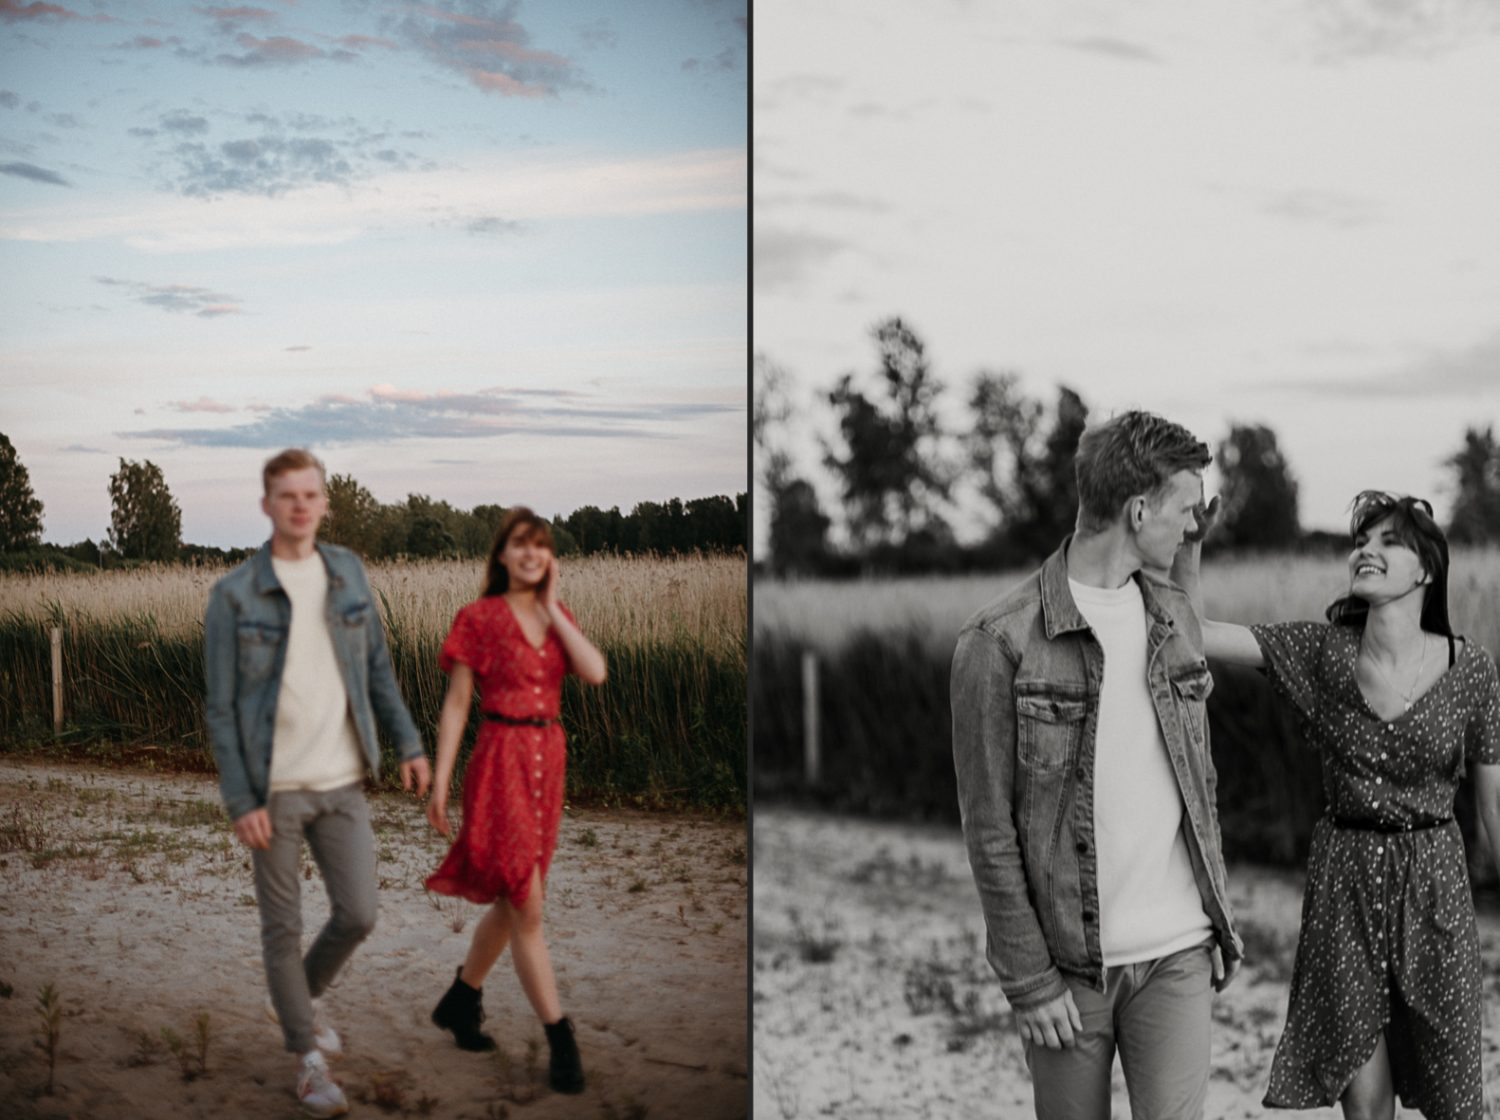 creative-couple-photoshoot-outdoors-by-miks-sels-photography-64.5